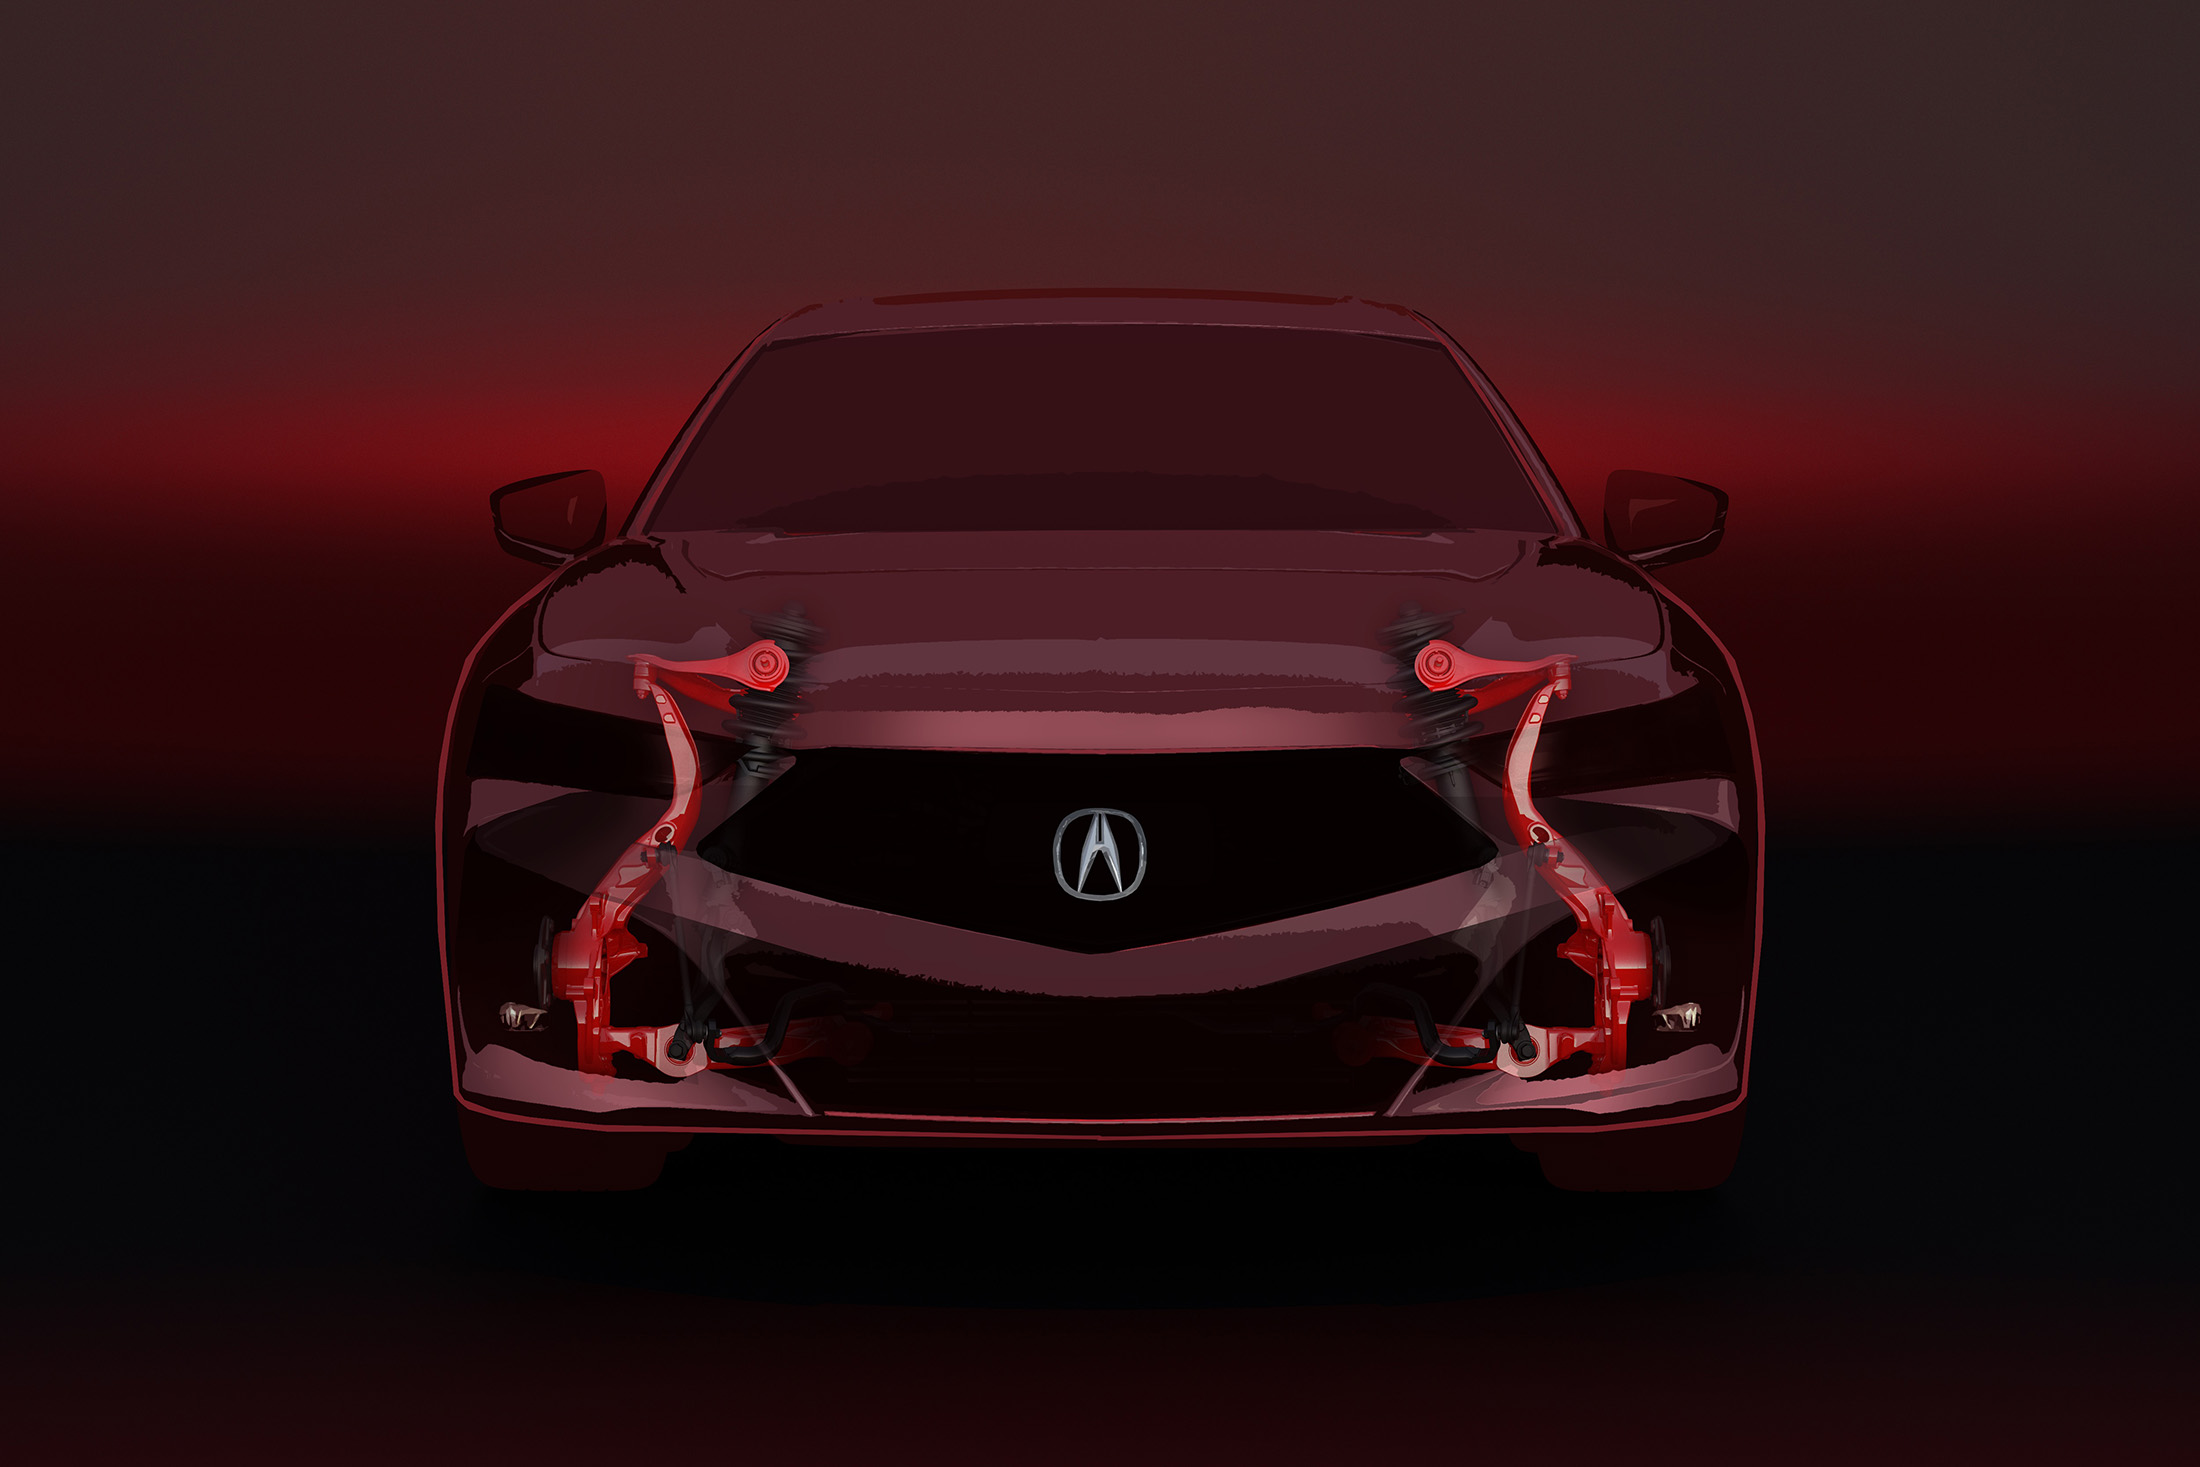 2021 Acura TLX Shows Its Face While Keeping Us in Suspense